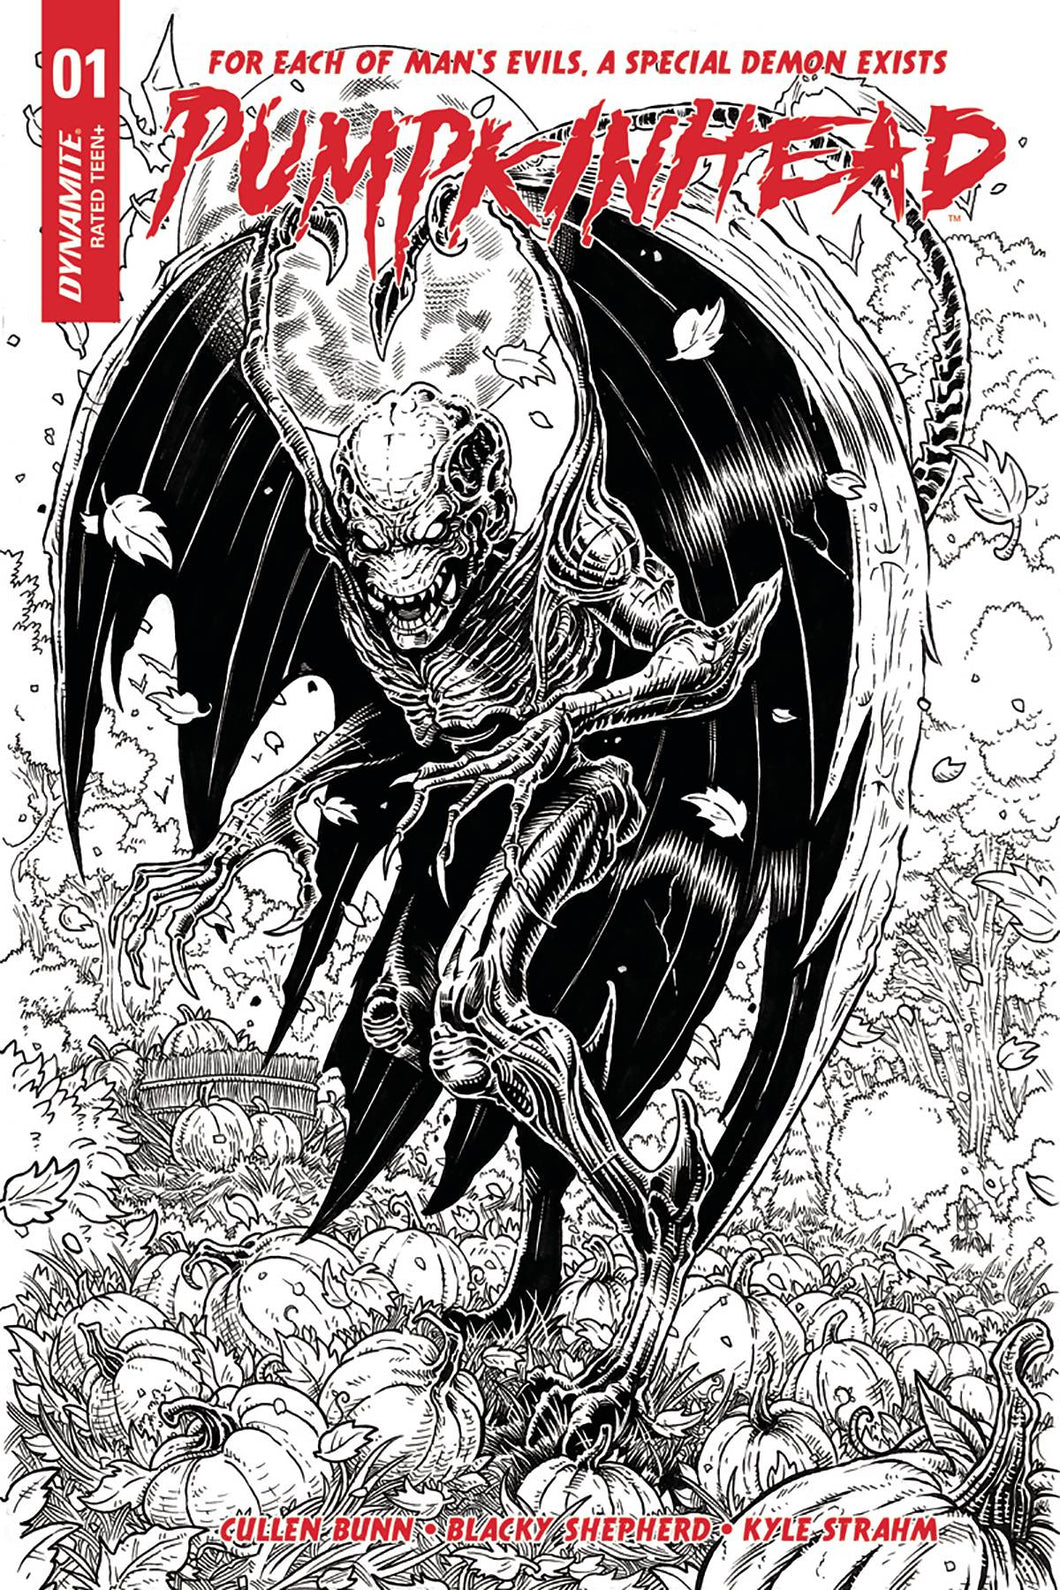 PUMPKINHEAD #1 (OF 5) CVR E 20 COPY HAESER 1:20 INCENTIVE VARIANT 02/21/18 RD